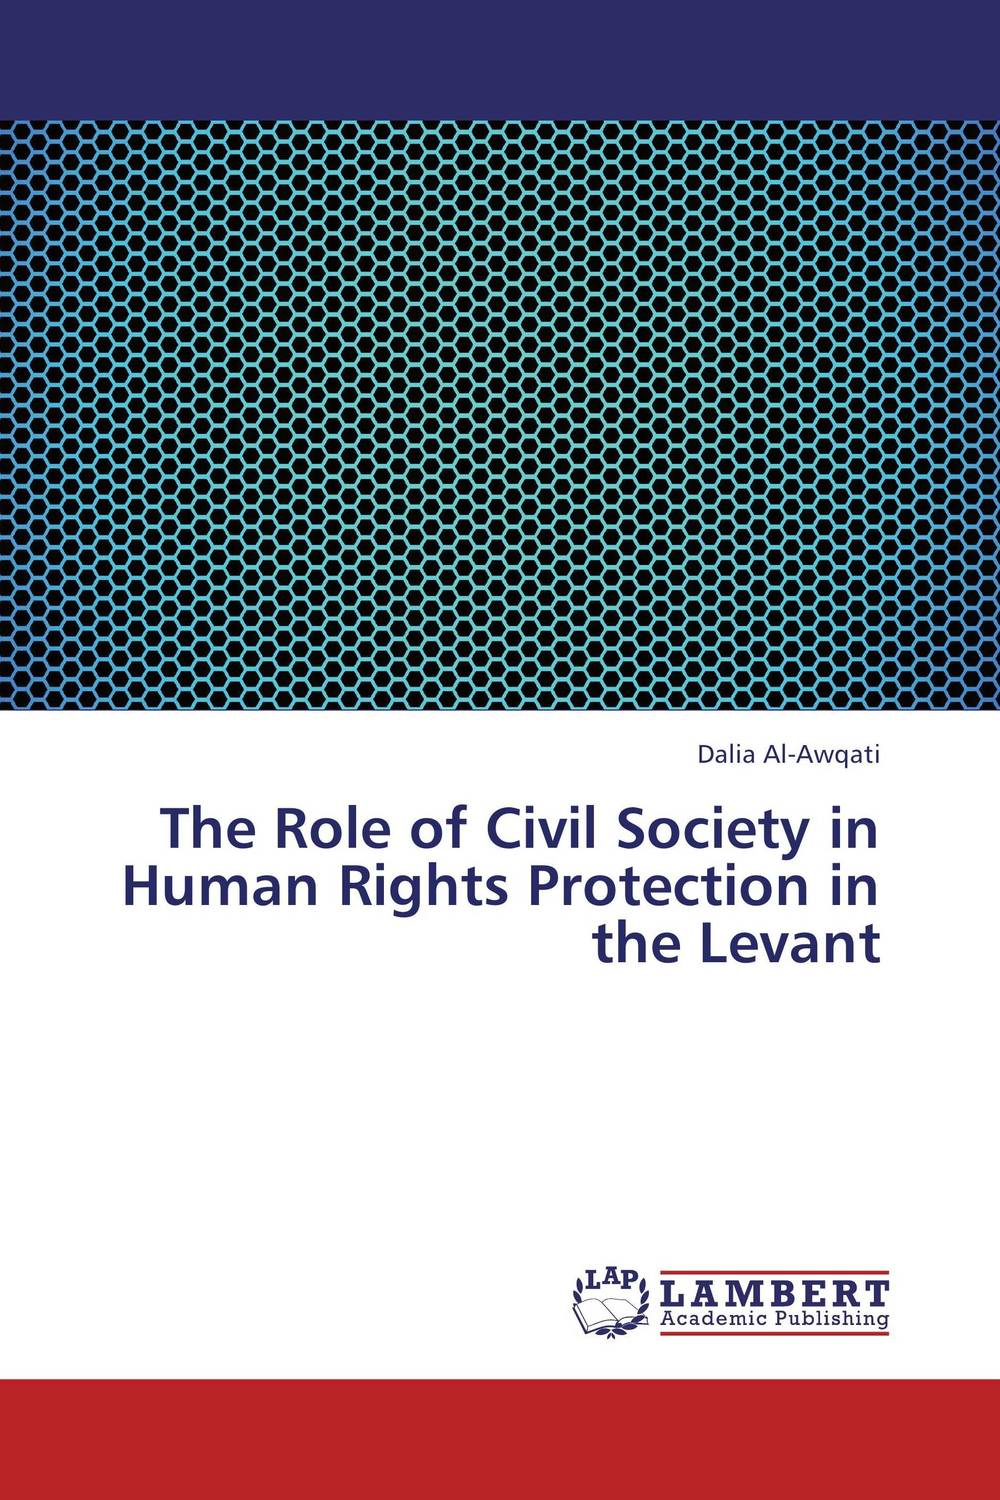 The Role of Civil Society in Human Rights Protection in the Levant rakesh kumar emerging role of civil society in development of botswana